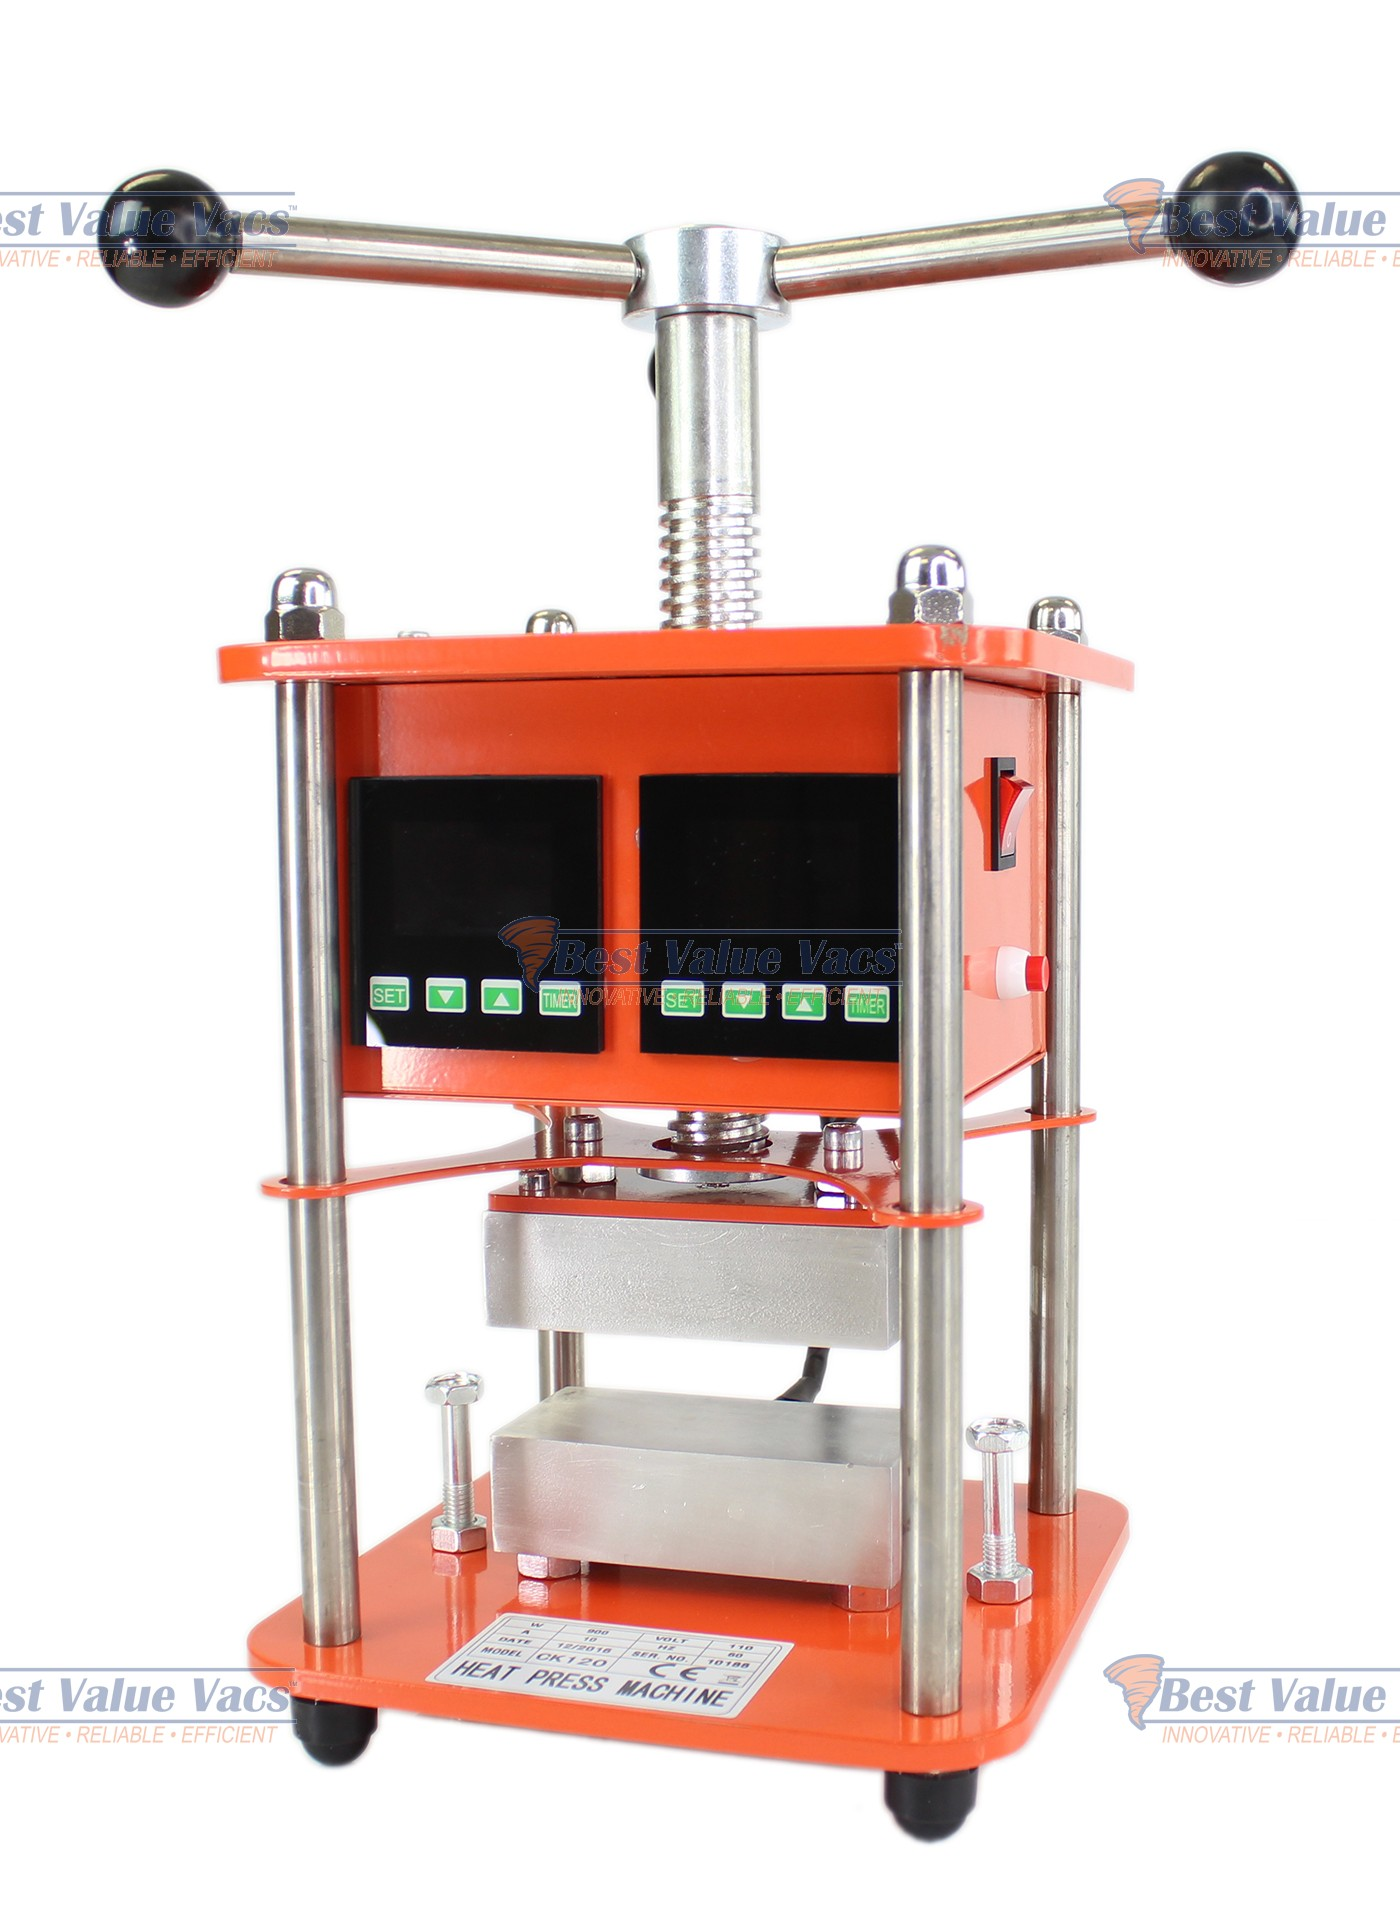 The Cyclone Twist Rosin Press